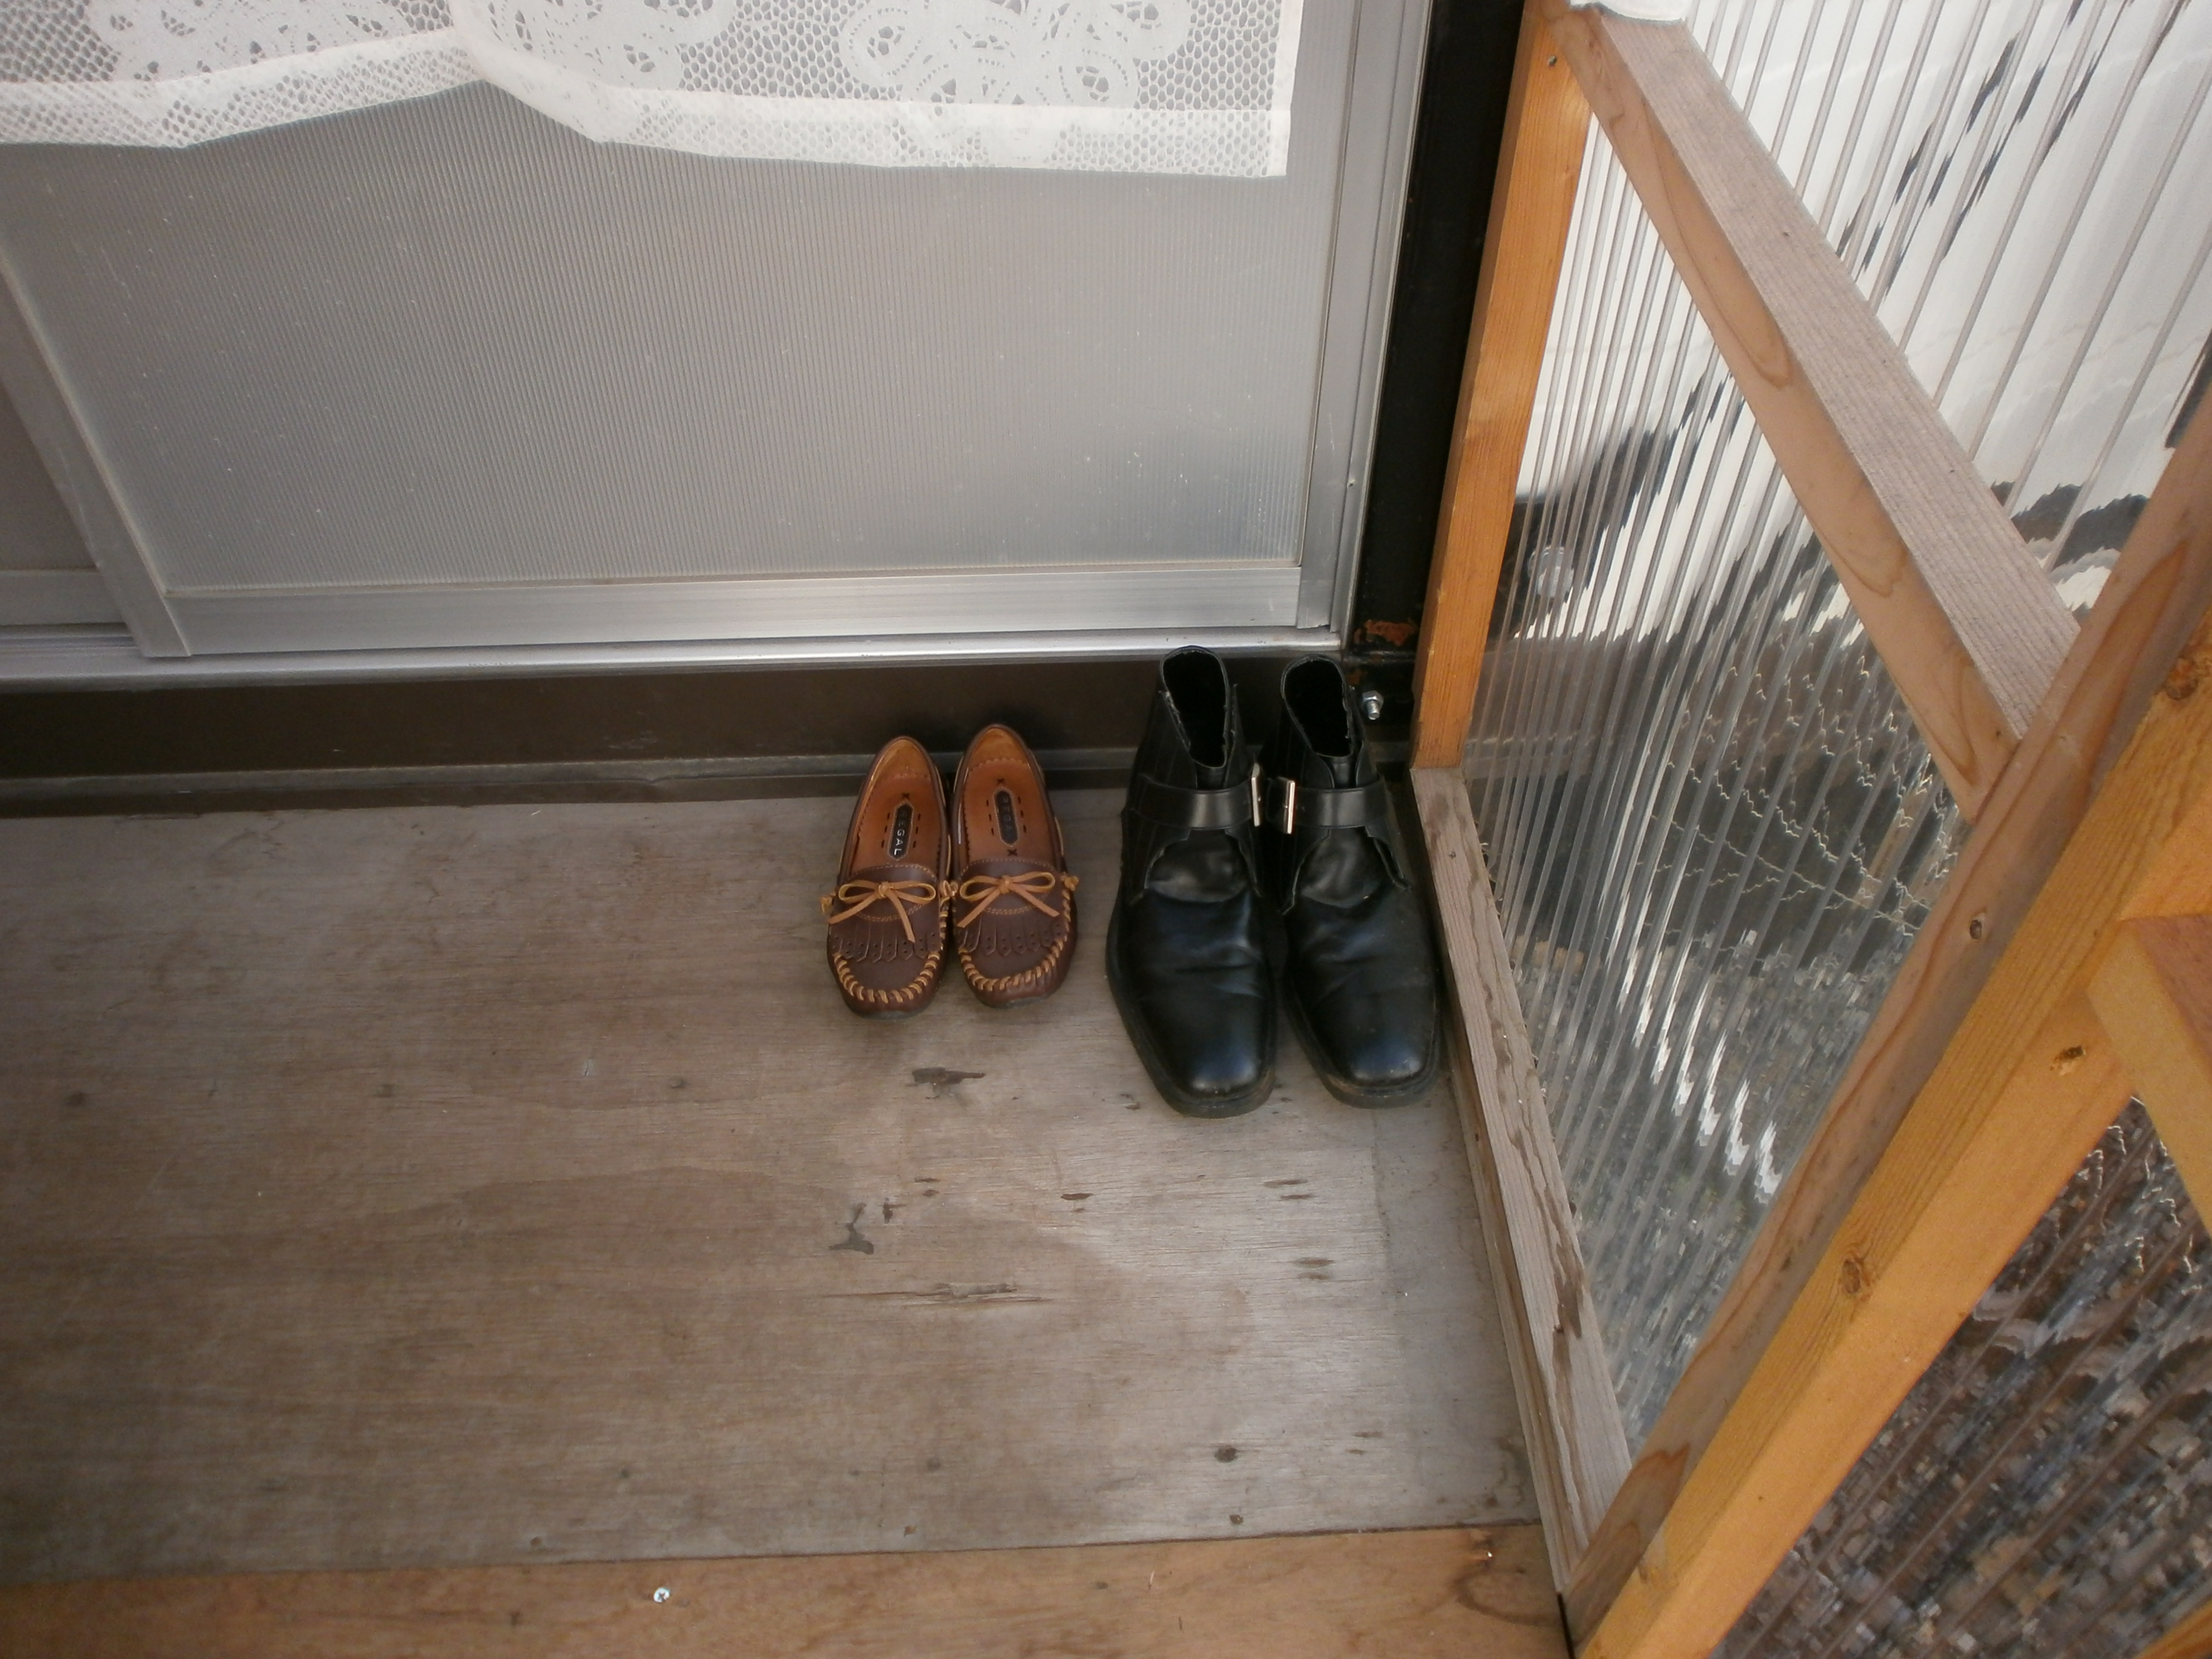 A large pair of men's shoes beside a smaller ladies pair of shoes near front door. Image credit: William Foreman